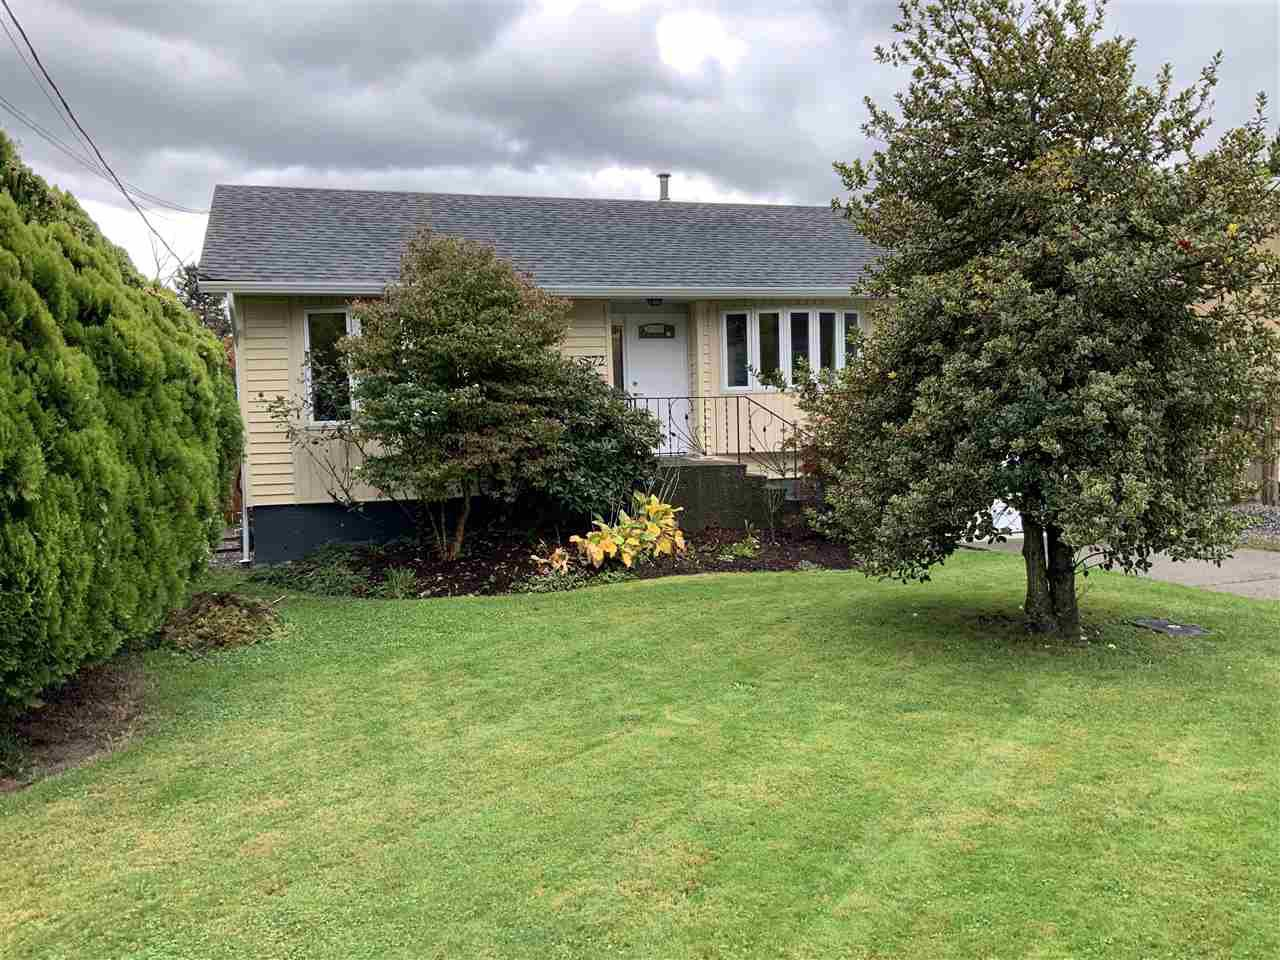 Main Photo: 45572 HERRON Avenue in Chilliwack: Chilliwack N Yale-Well House for sale : MLS®# R2411384